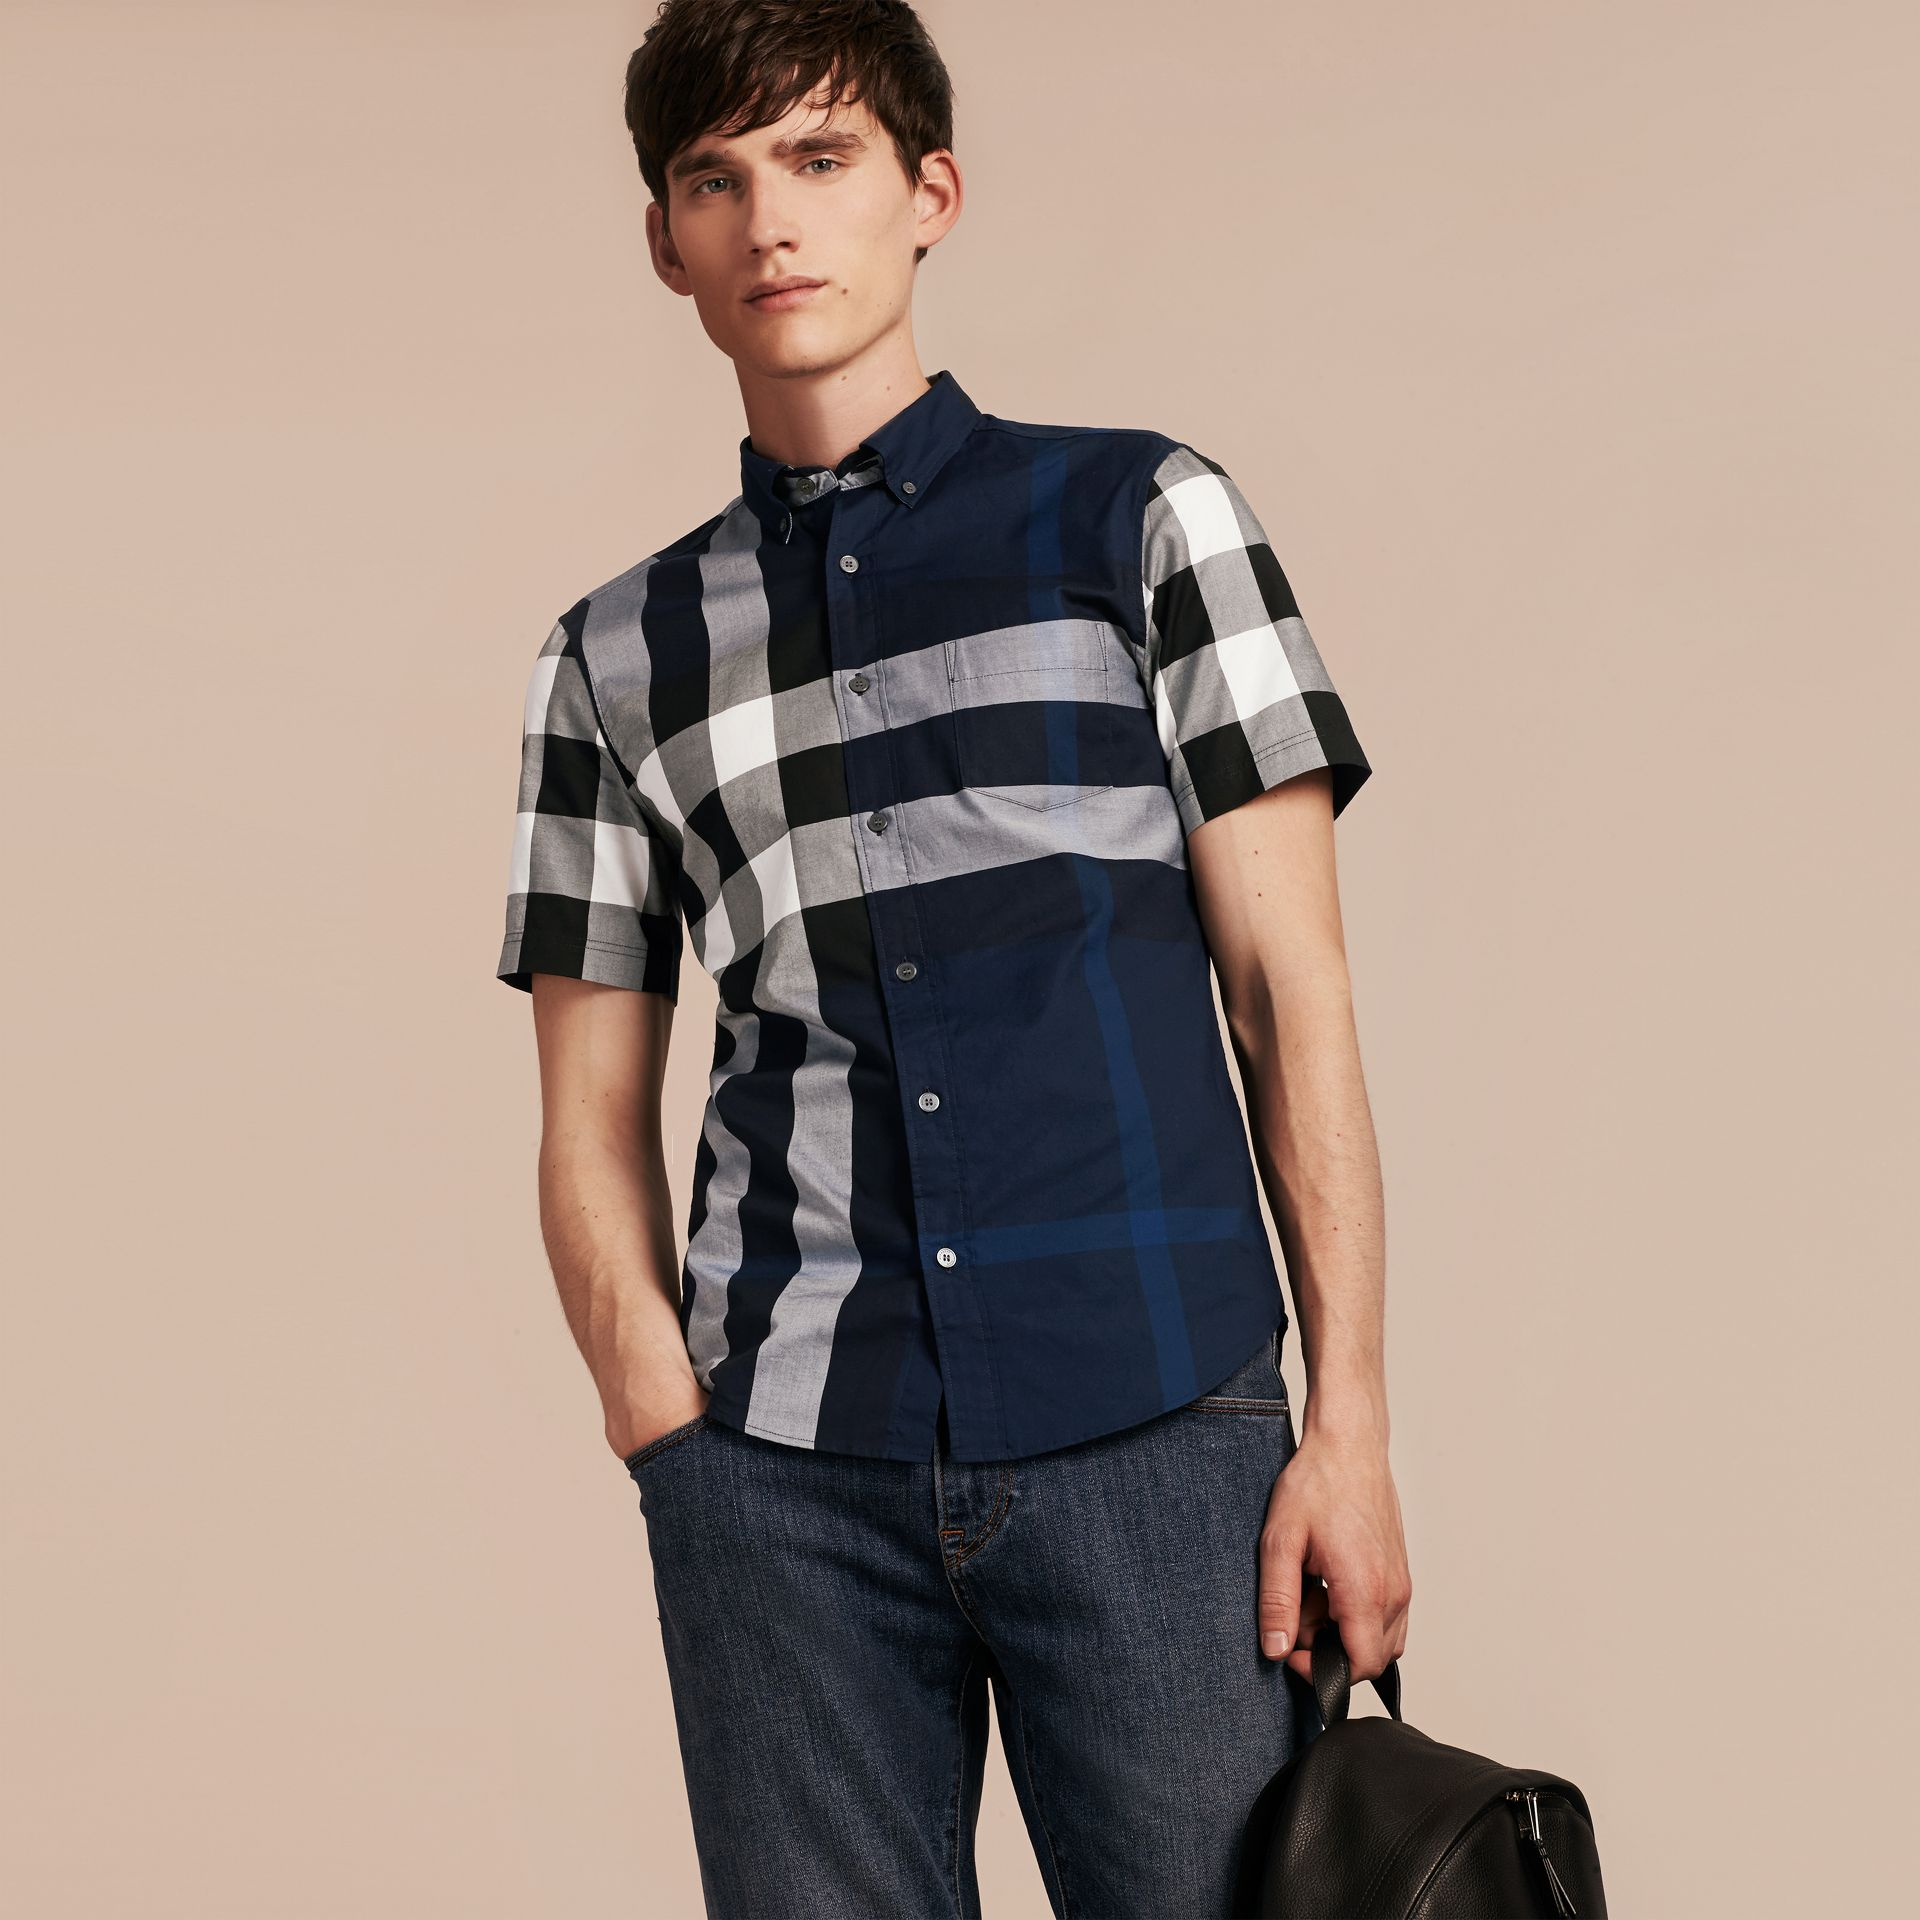 Indigo blue Short-sleeved Check Cotton Shirt Indigo Blue - gallery image 6